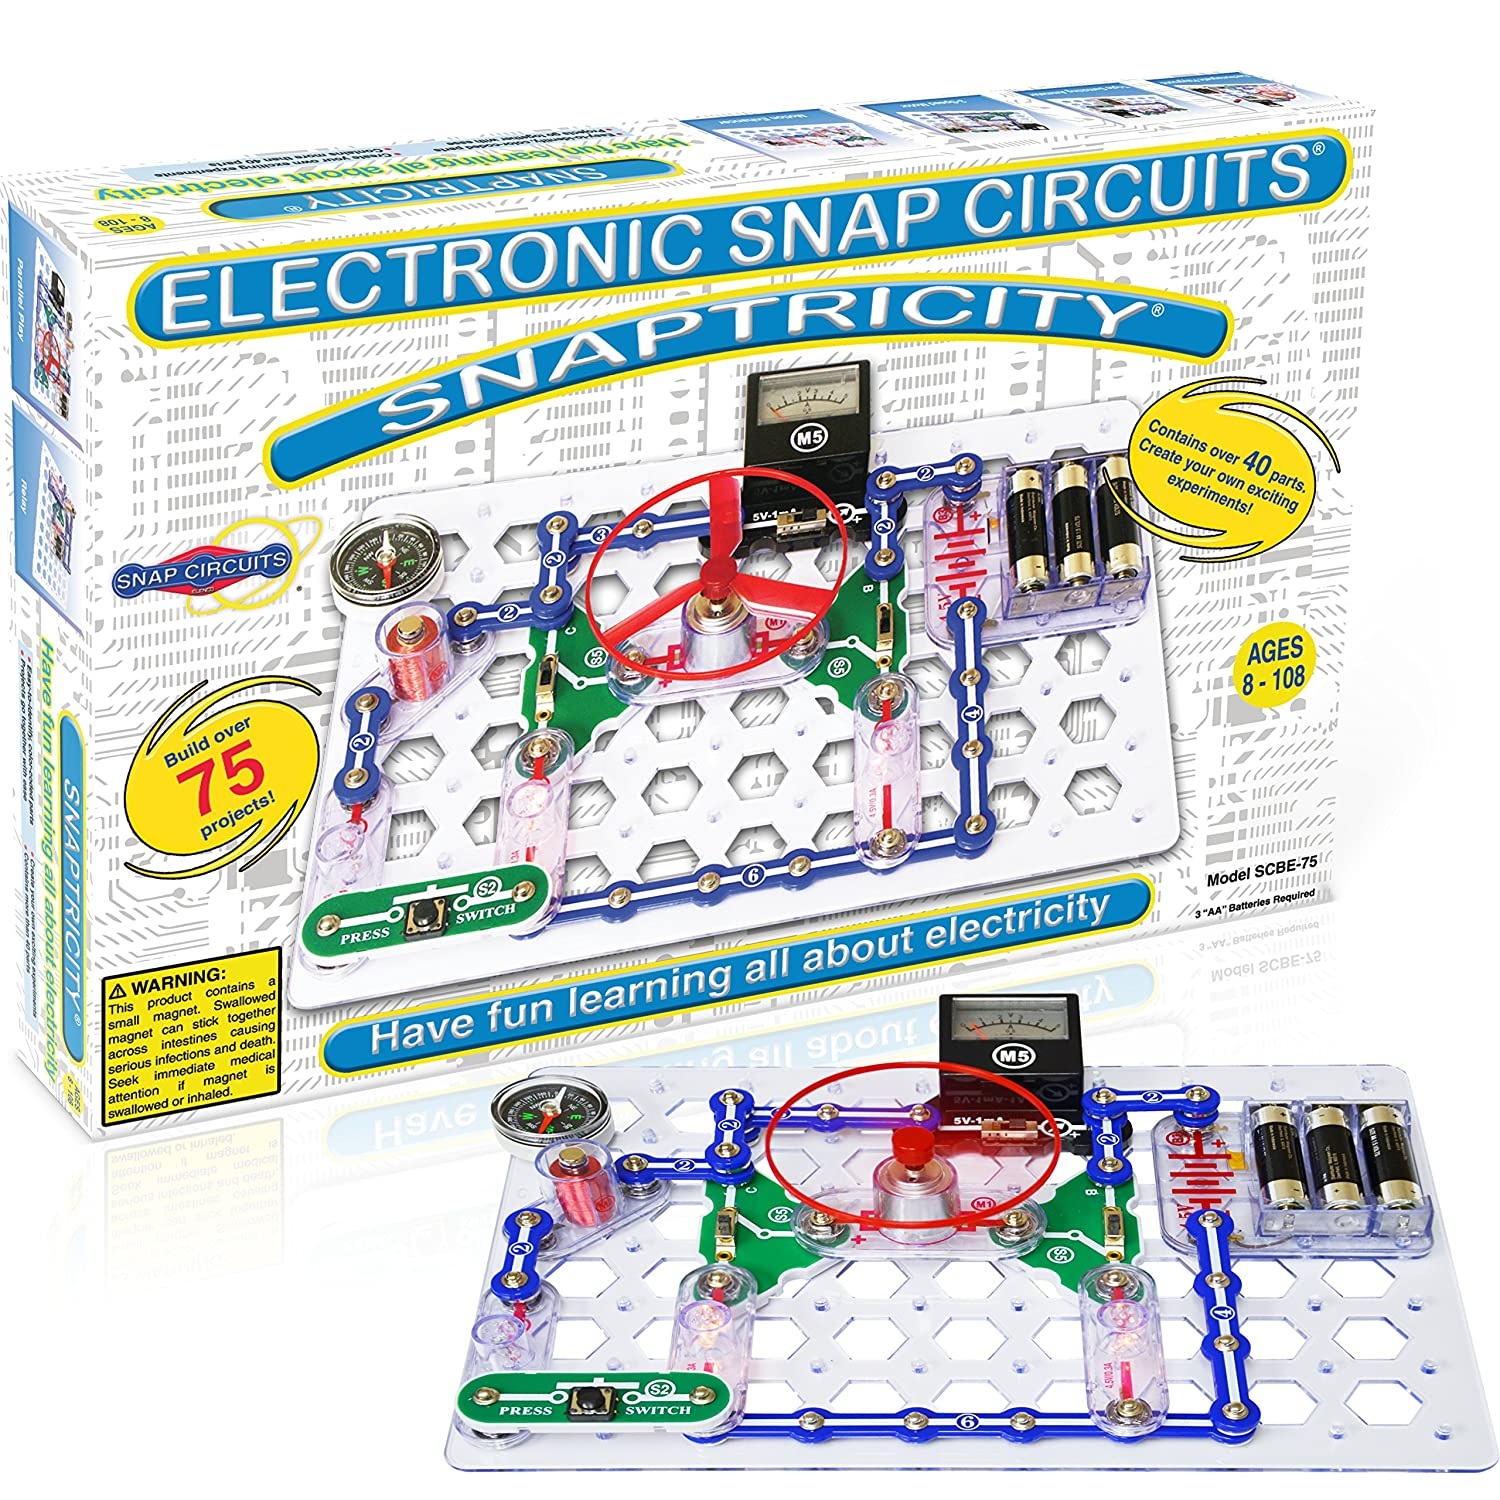 Snap Circuits Snaptricity Electronics Discovery Kit Software For Designing Electronicslab Toys Games